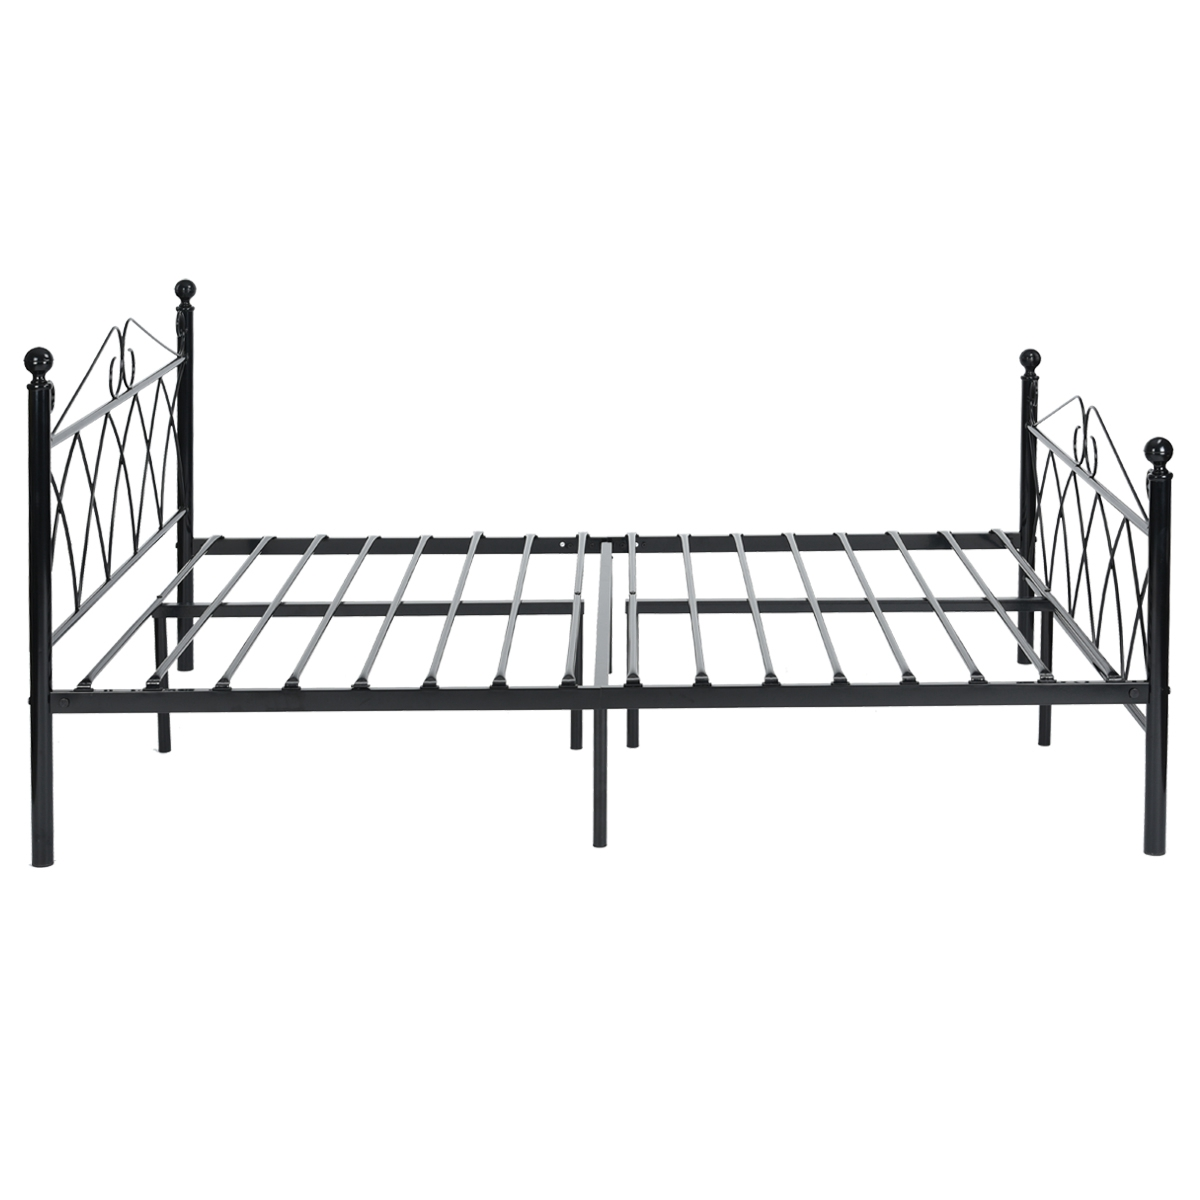 How To Assemble A Metal Bed Frame With Headboard